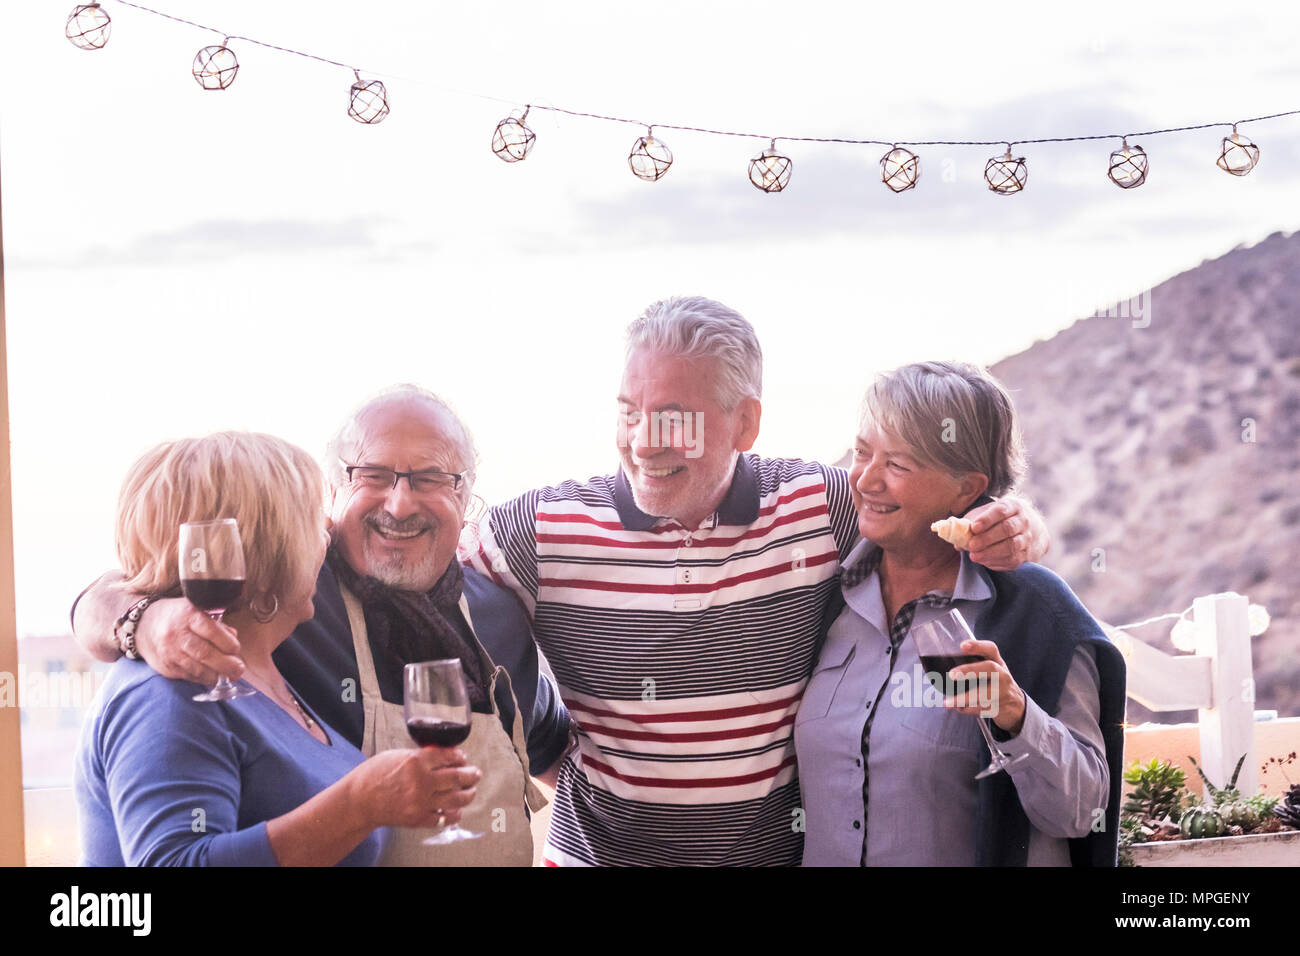 group of 4 seniors, two couples, stay togheter and have fun enjoing a cup of wine outdoor in the rooftop. vacation elderly concept and friendship. sun - Stock Image